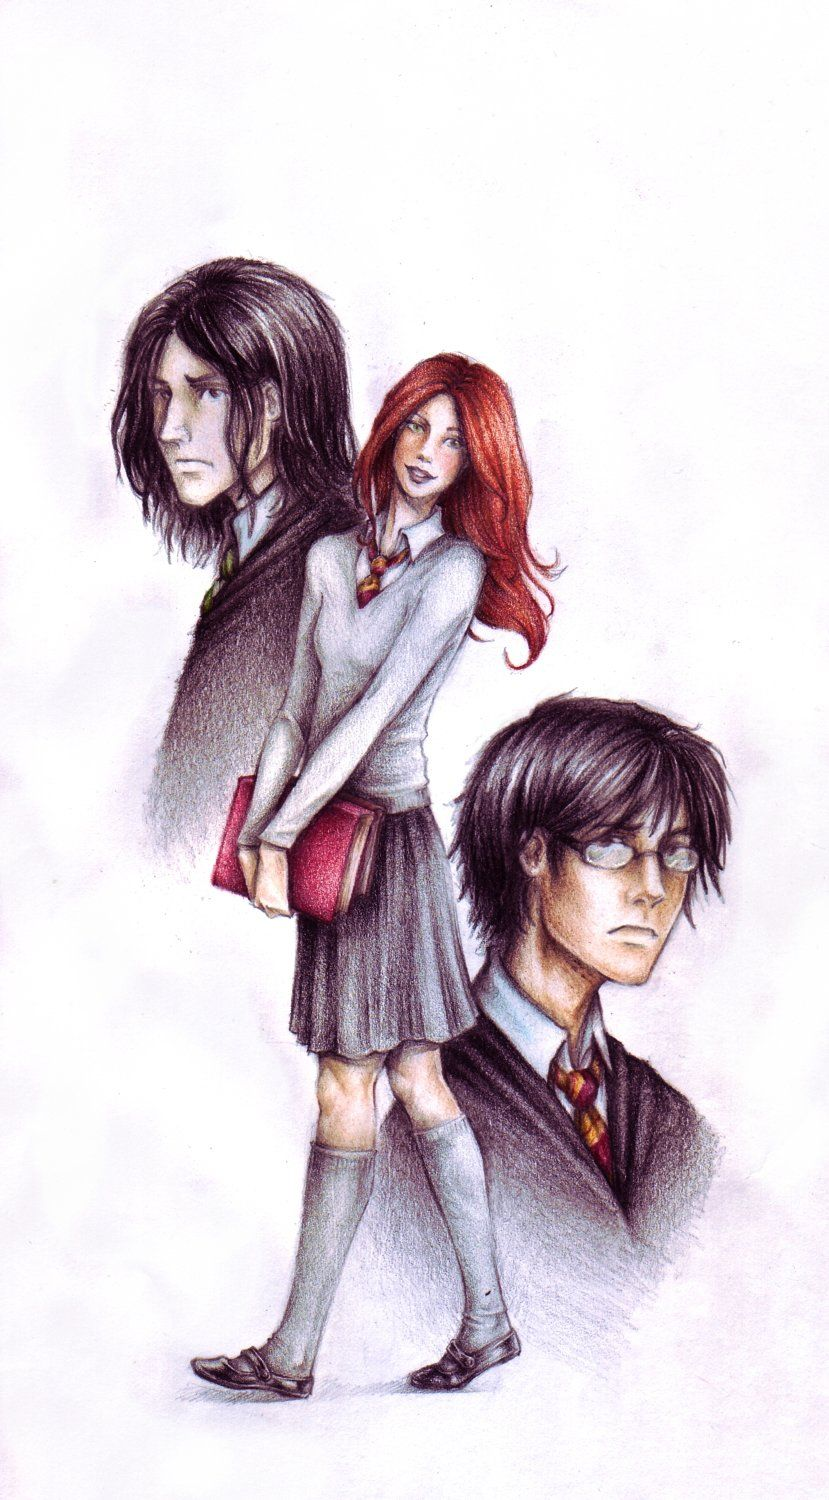 Lily's Choice by Achen089 on DeviantArt